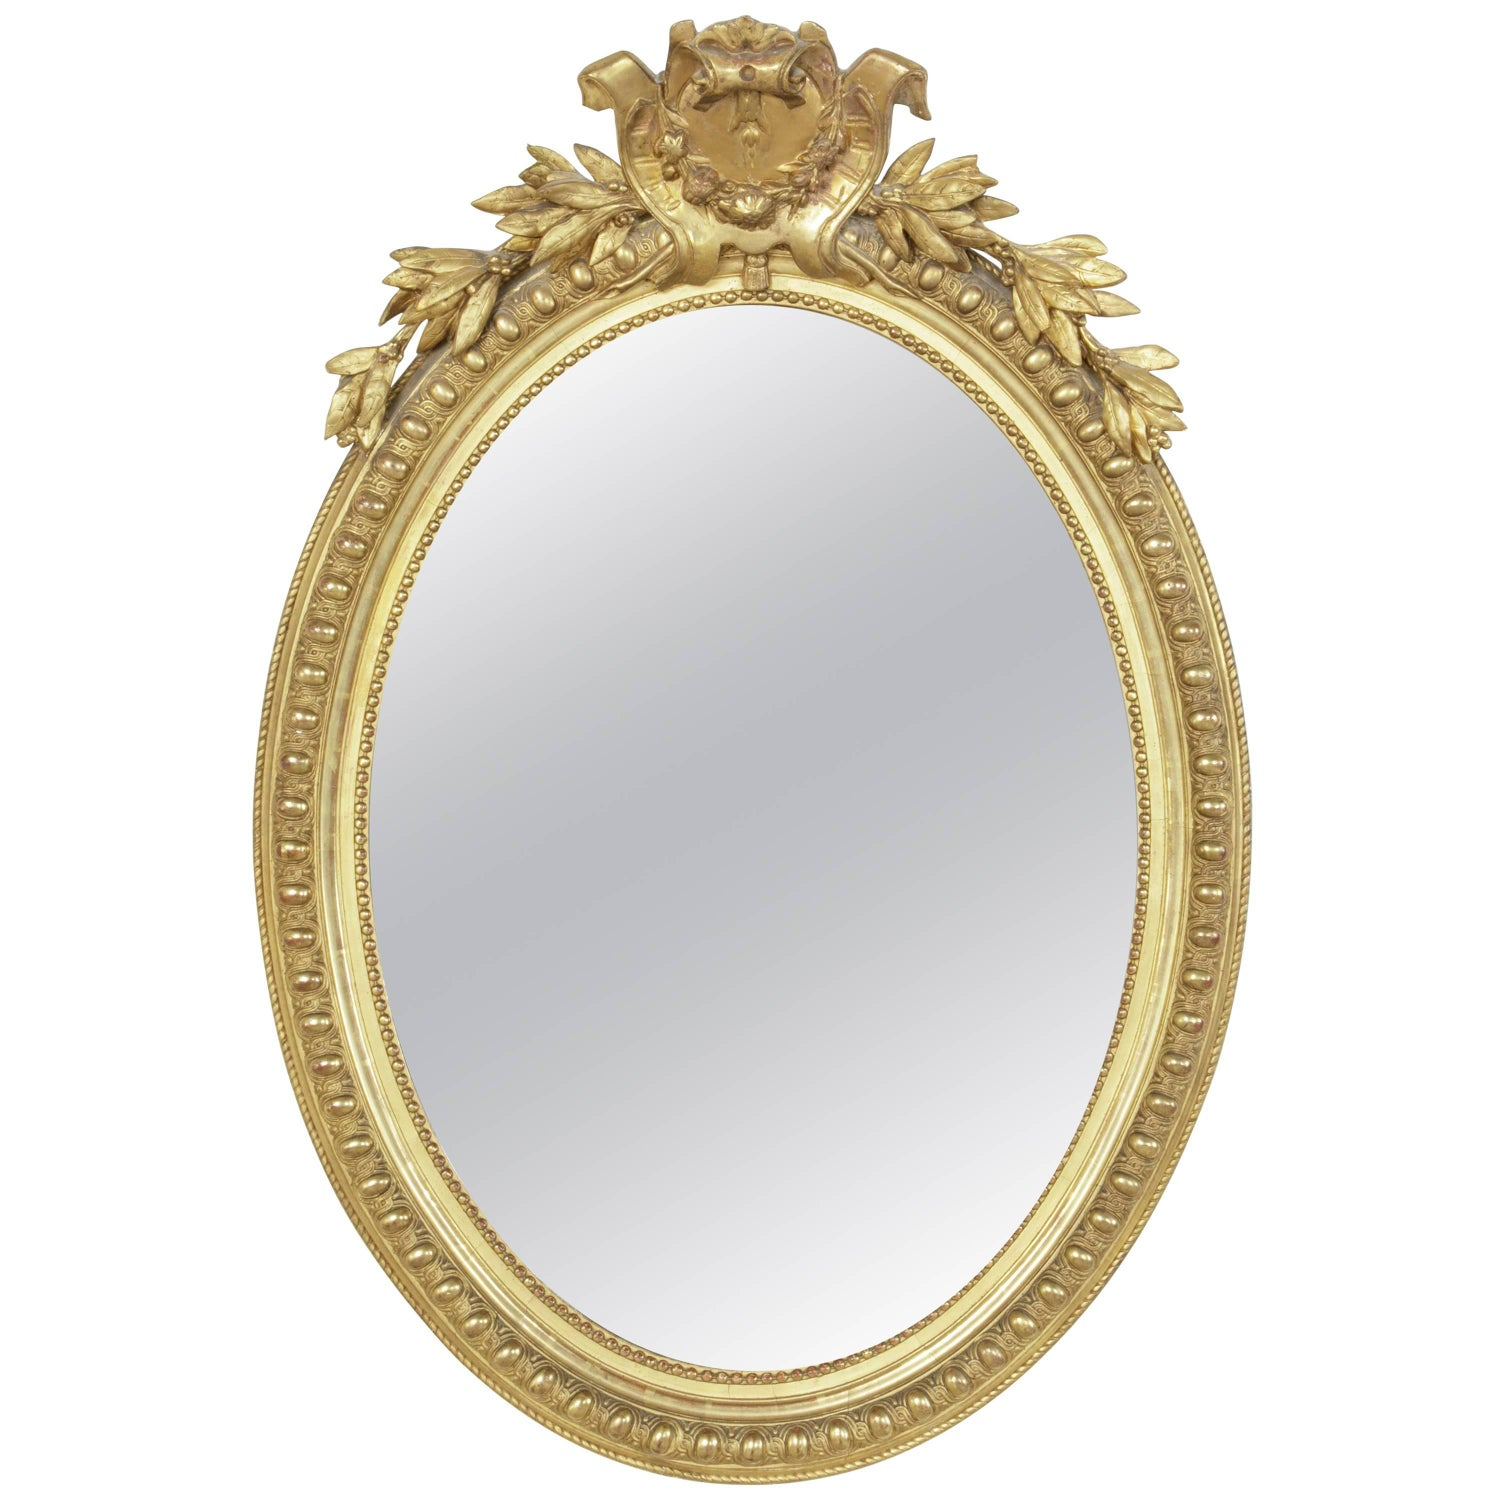 Regency Mirrors - 262 For Sale at 1stdibs